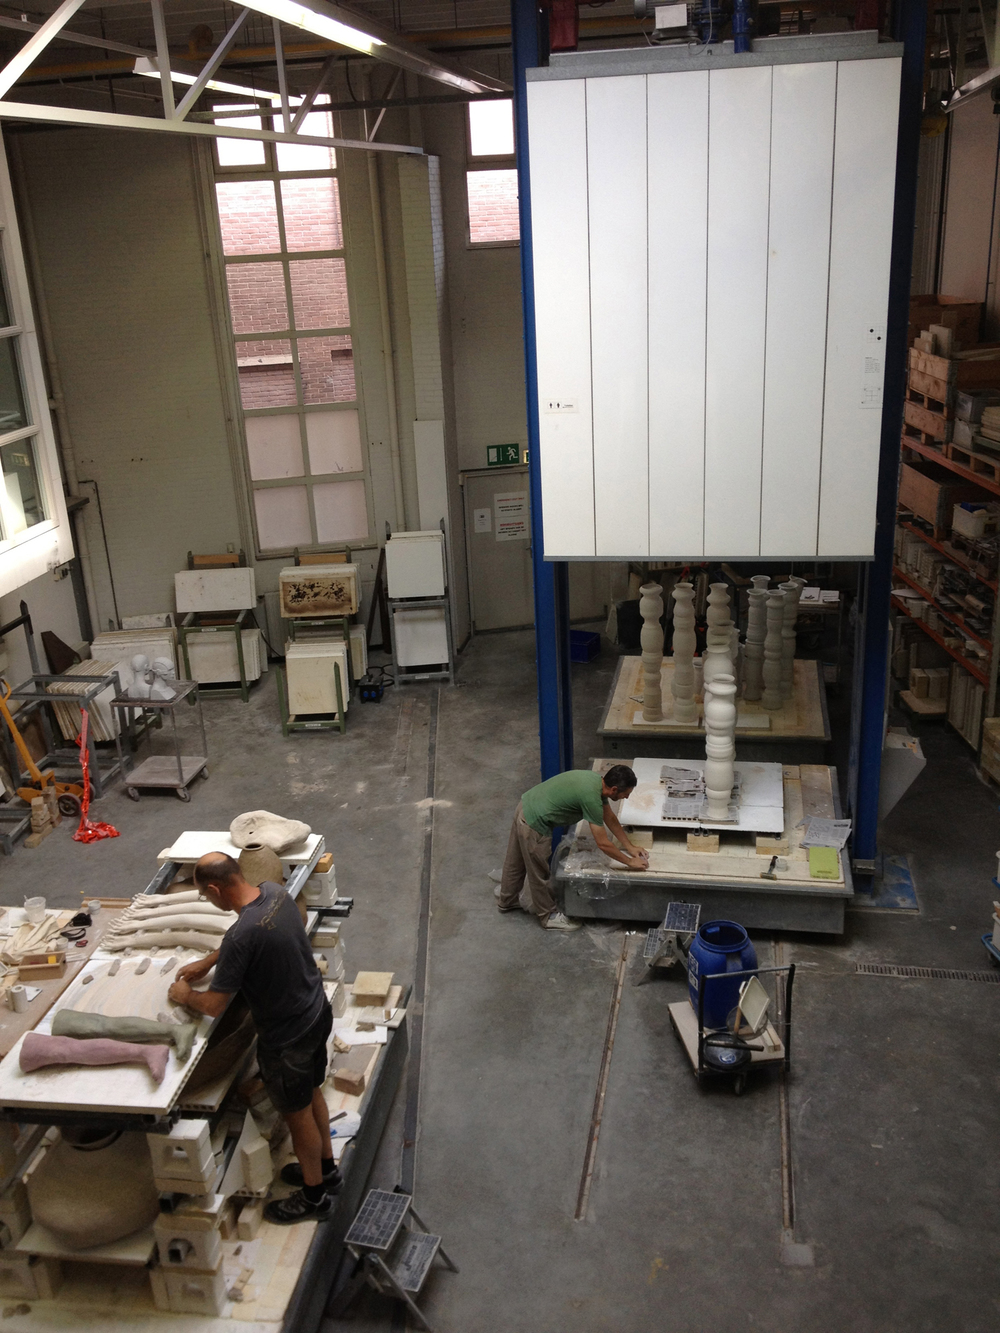 Technical staff at the European Ceramic Work Centre, in its (former) 's-Hertogenbosch premises, load work by artists Simon Bedwell (L) and by Jieun Yoo (R).